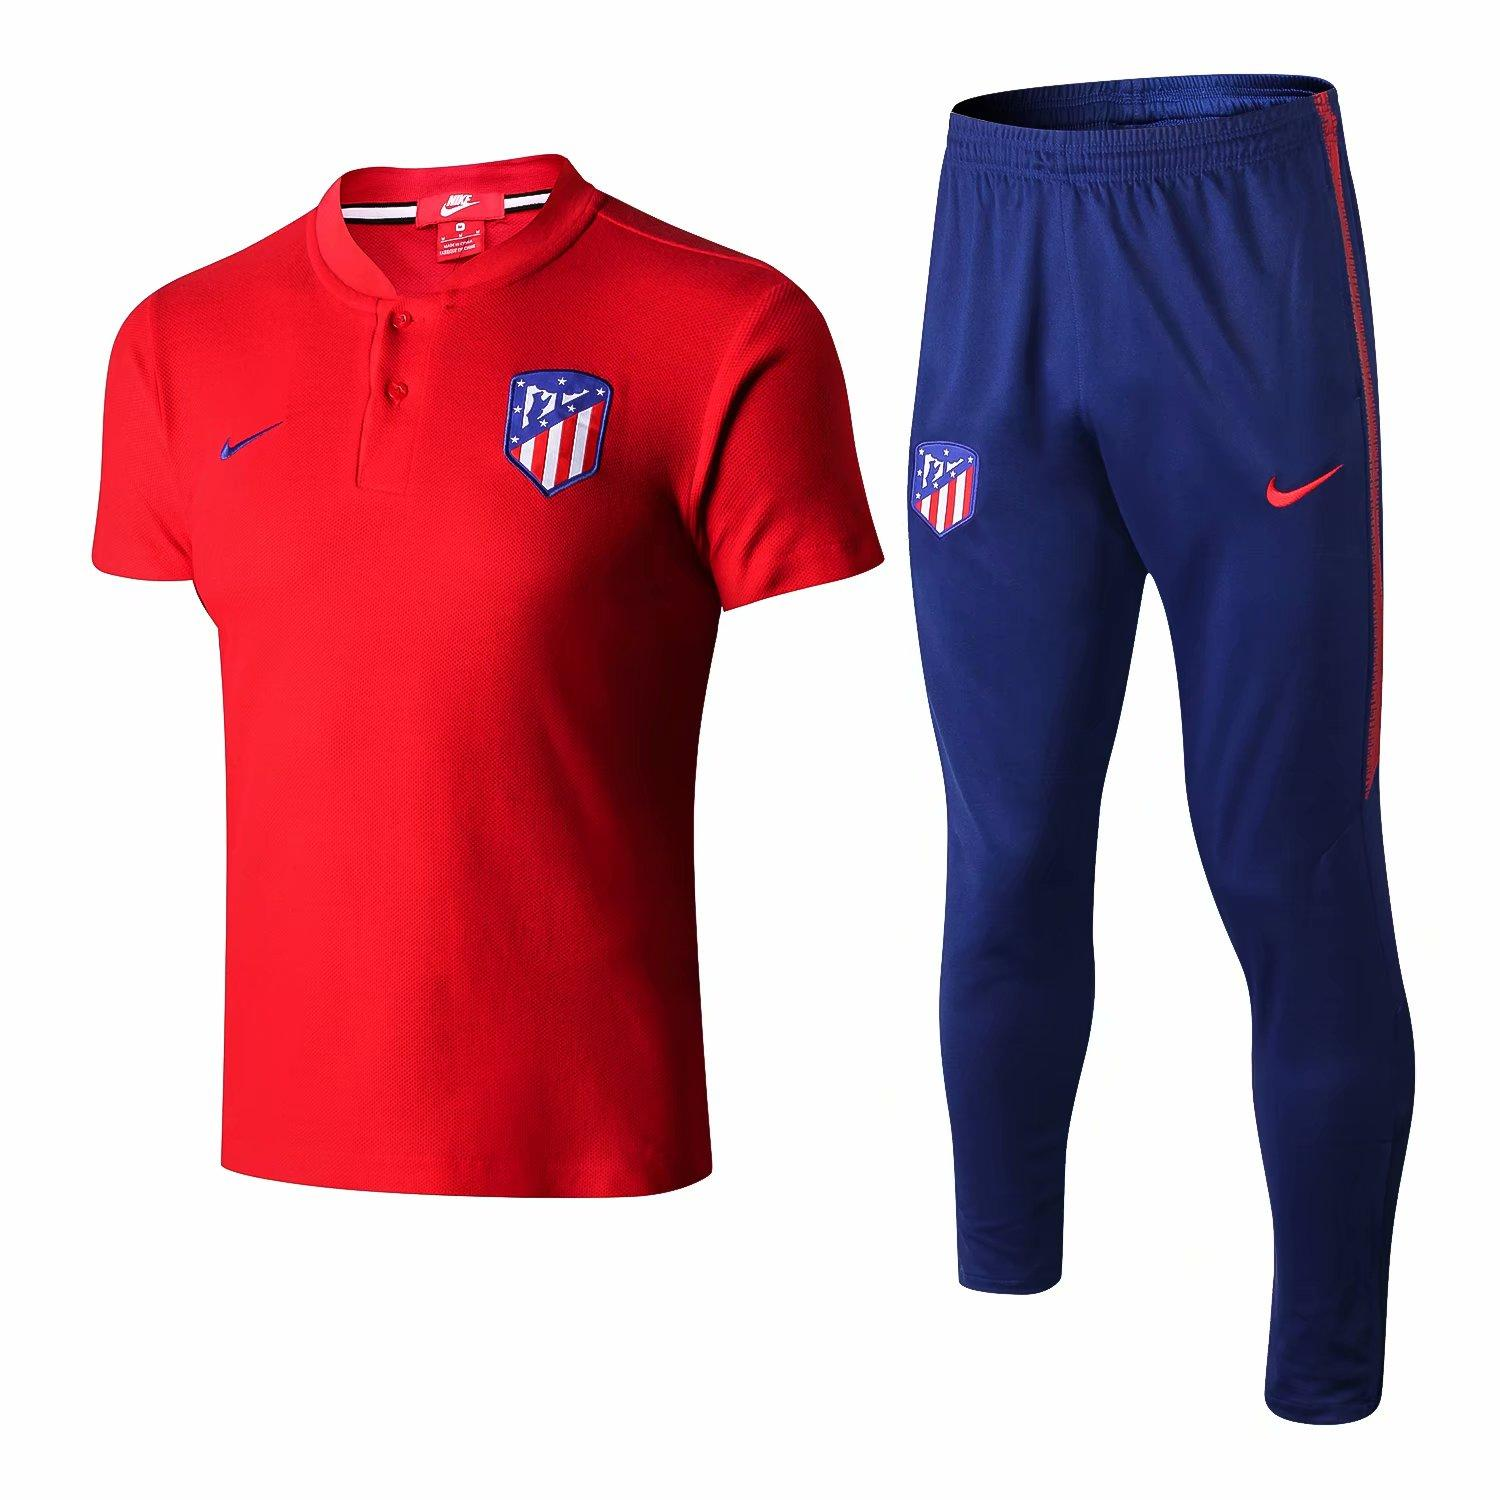 bff11f6c3 2019 2018 2019 world cup atletico madrid soccer polo shirt 18 19 di